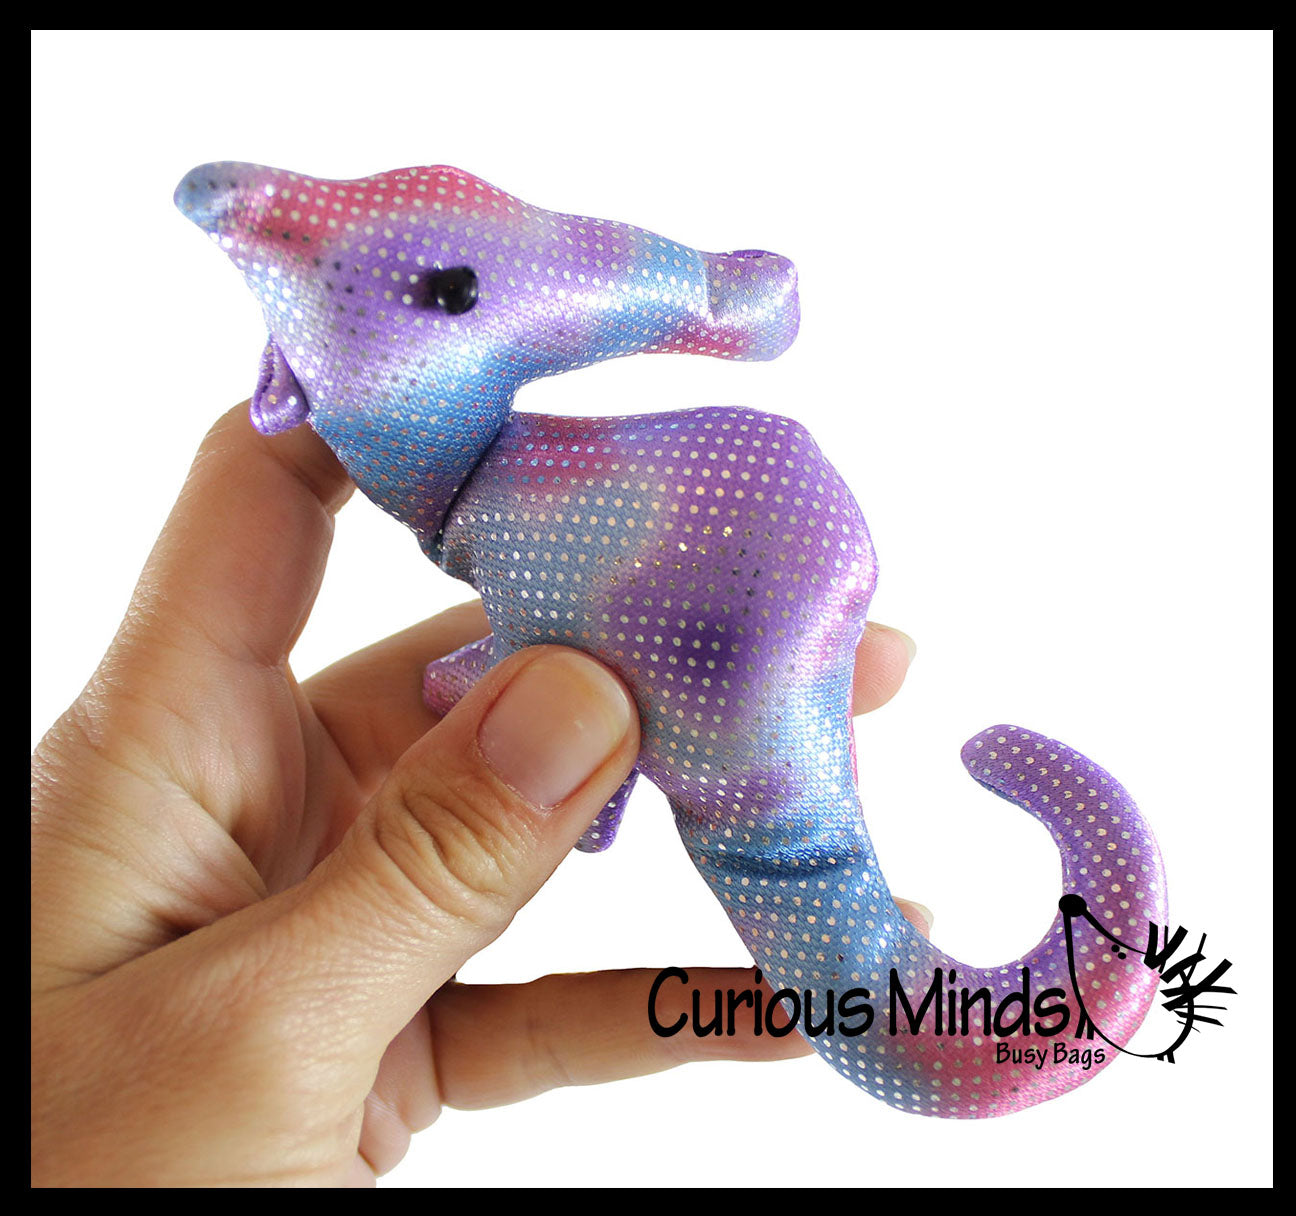 Sand Filled Stuffed Animals, Seahorse Sand Filled Animal Toy Heavy Weighted Sandbag Animal Plush Curious Minds Busy Bags